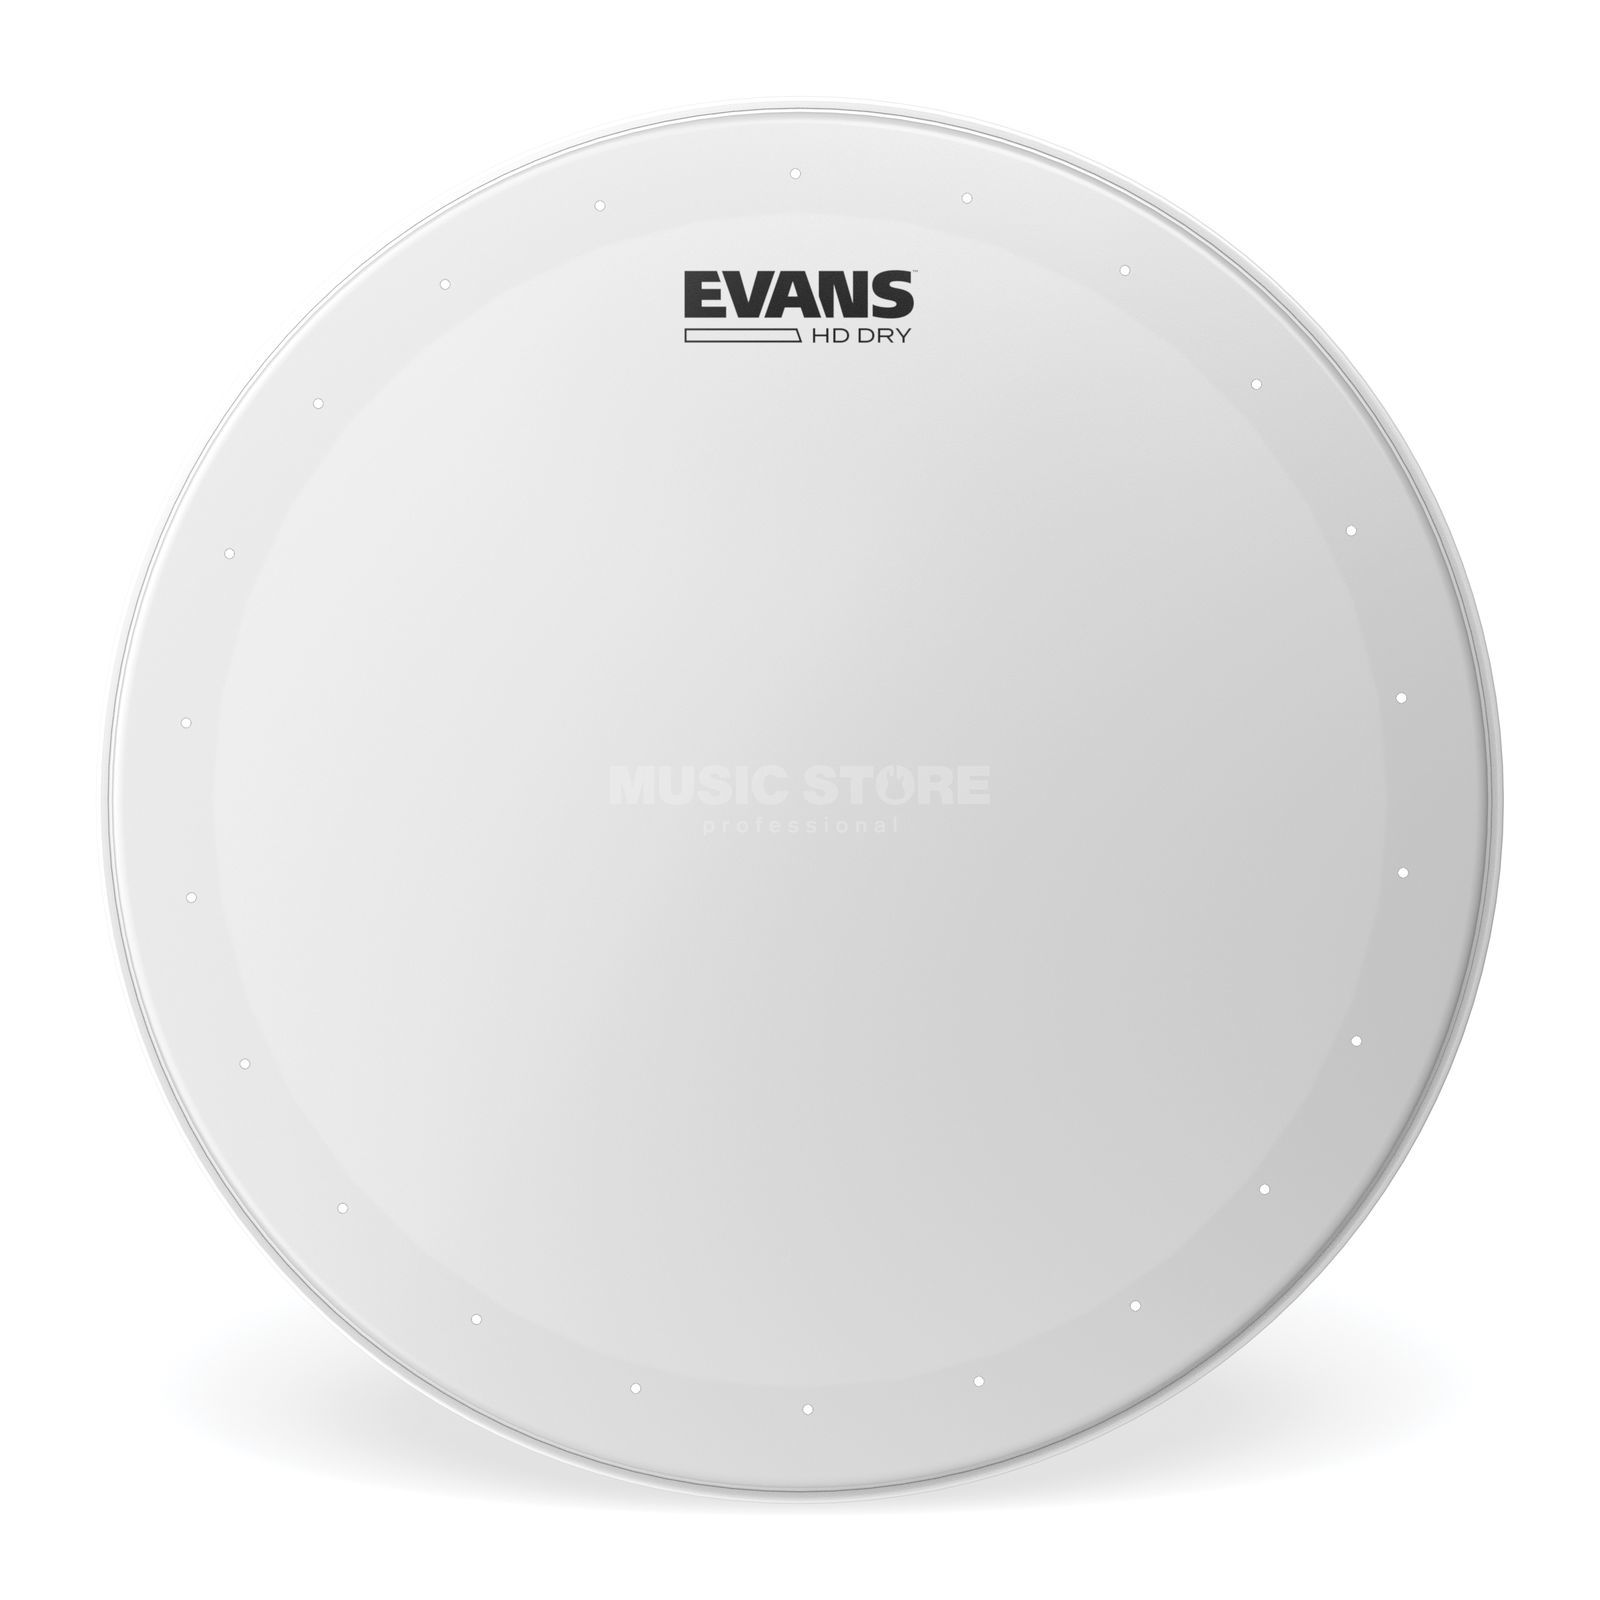 "Evans Genera HD Dry B12HDD 12"" Snare Batter Product Image"